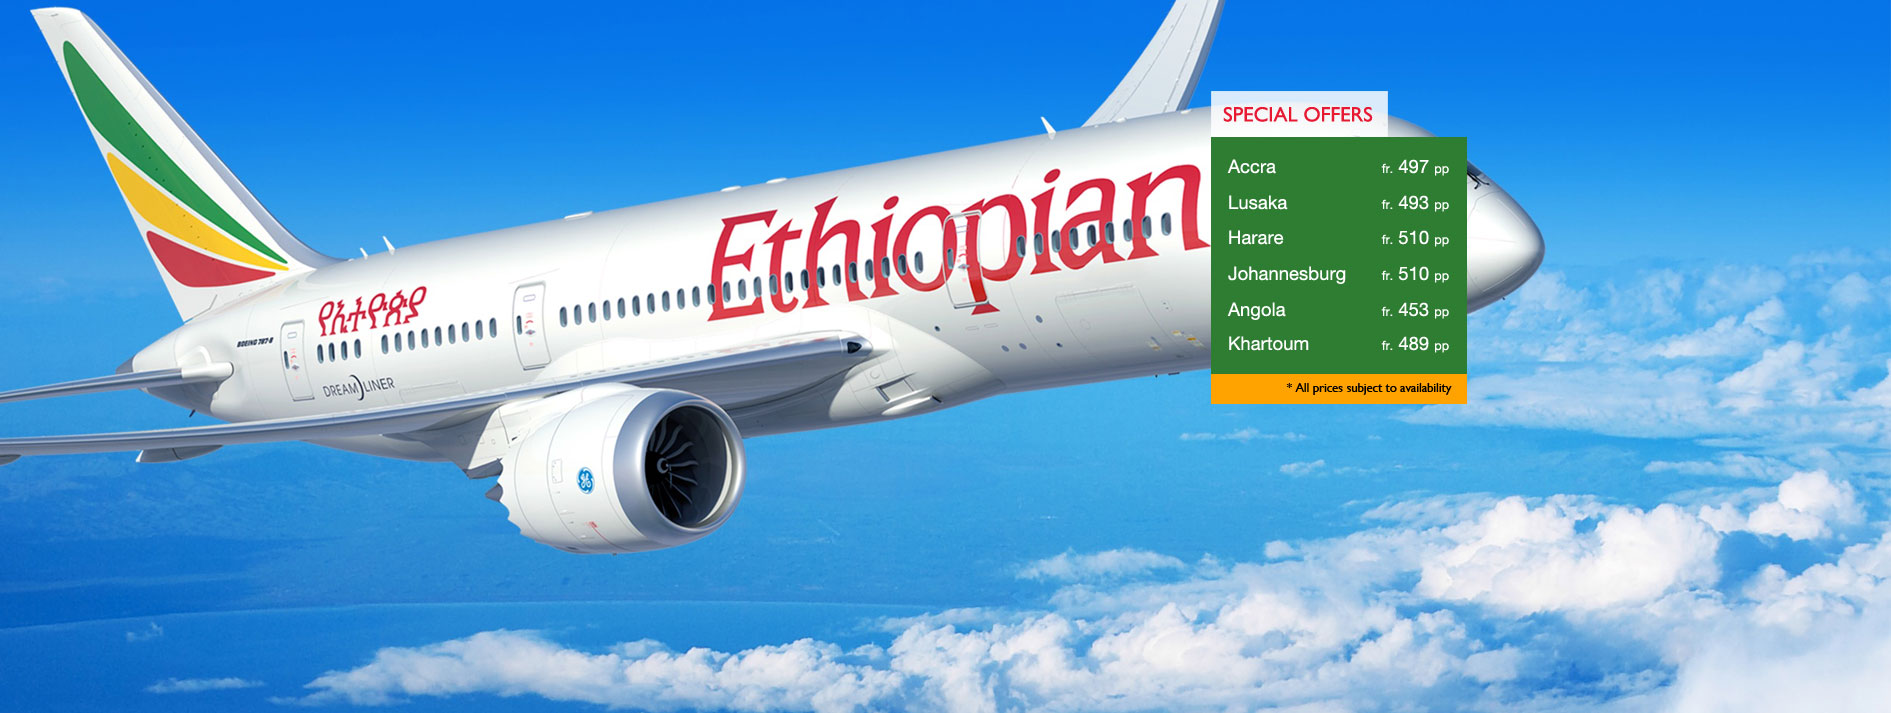 Ethiopian Airlines Special Offers Launch